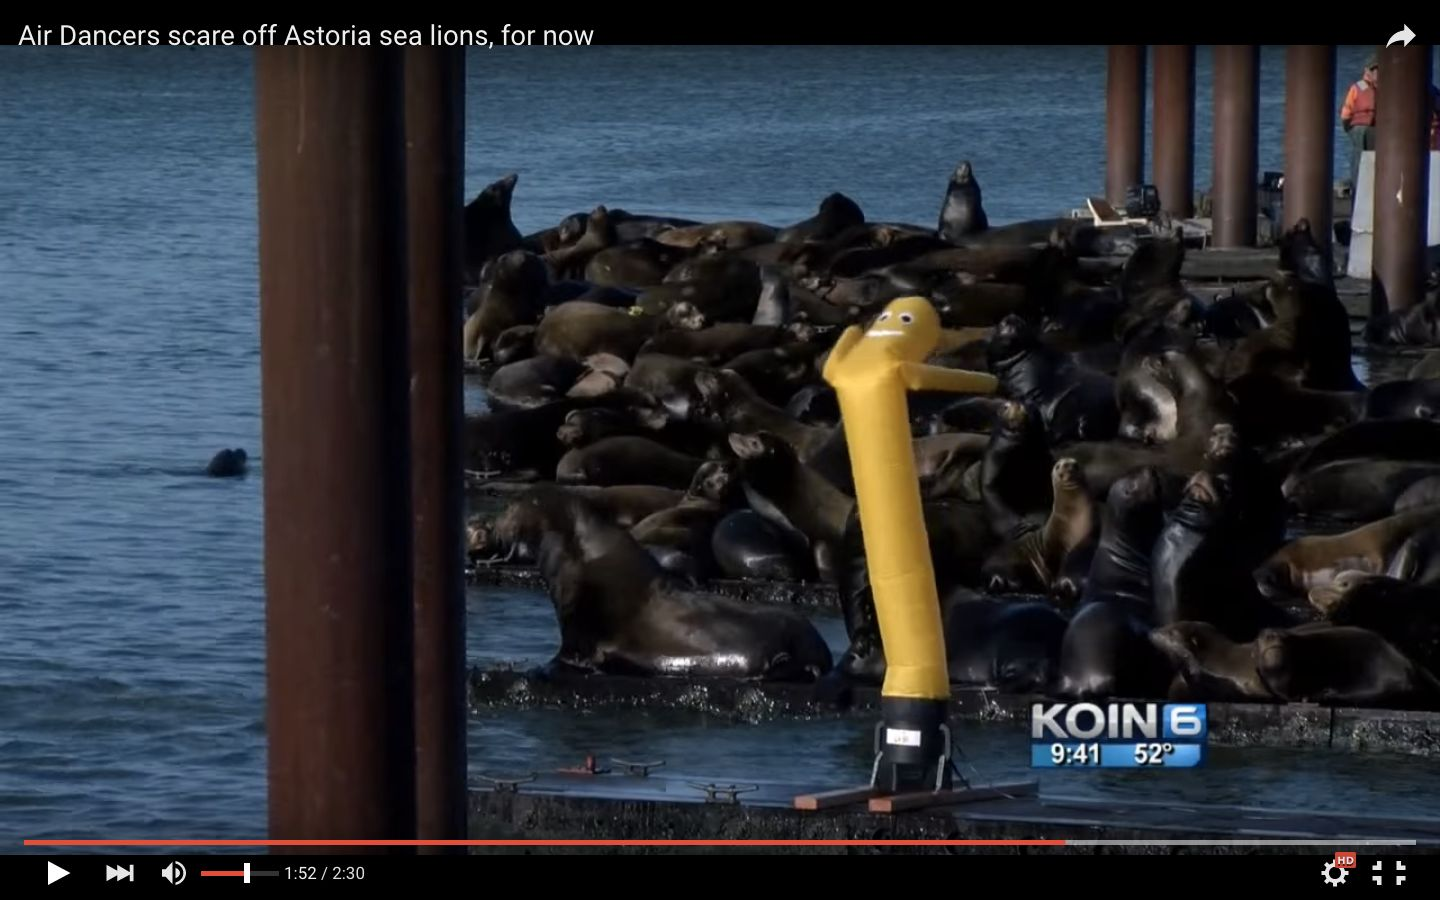 Inflatable tube dancers are being used to scare sea lions from docks in Oregon.